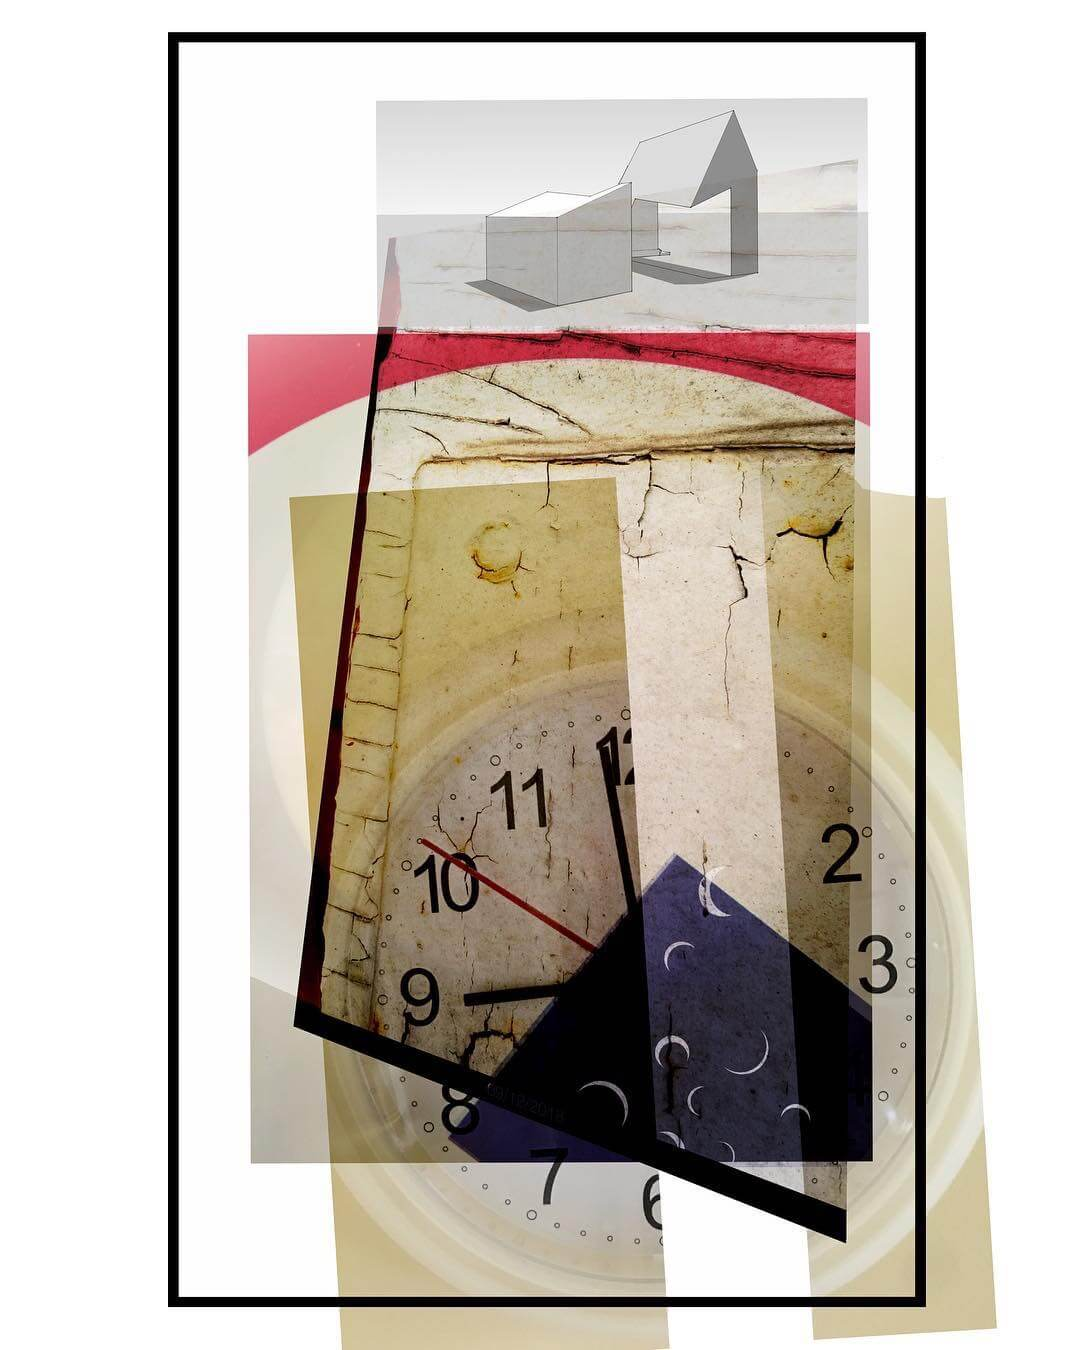 A photo-montage comprising a clock, an abstract piece of architecture and various textures and graphic elements